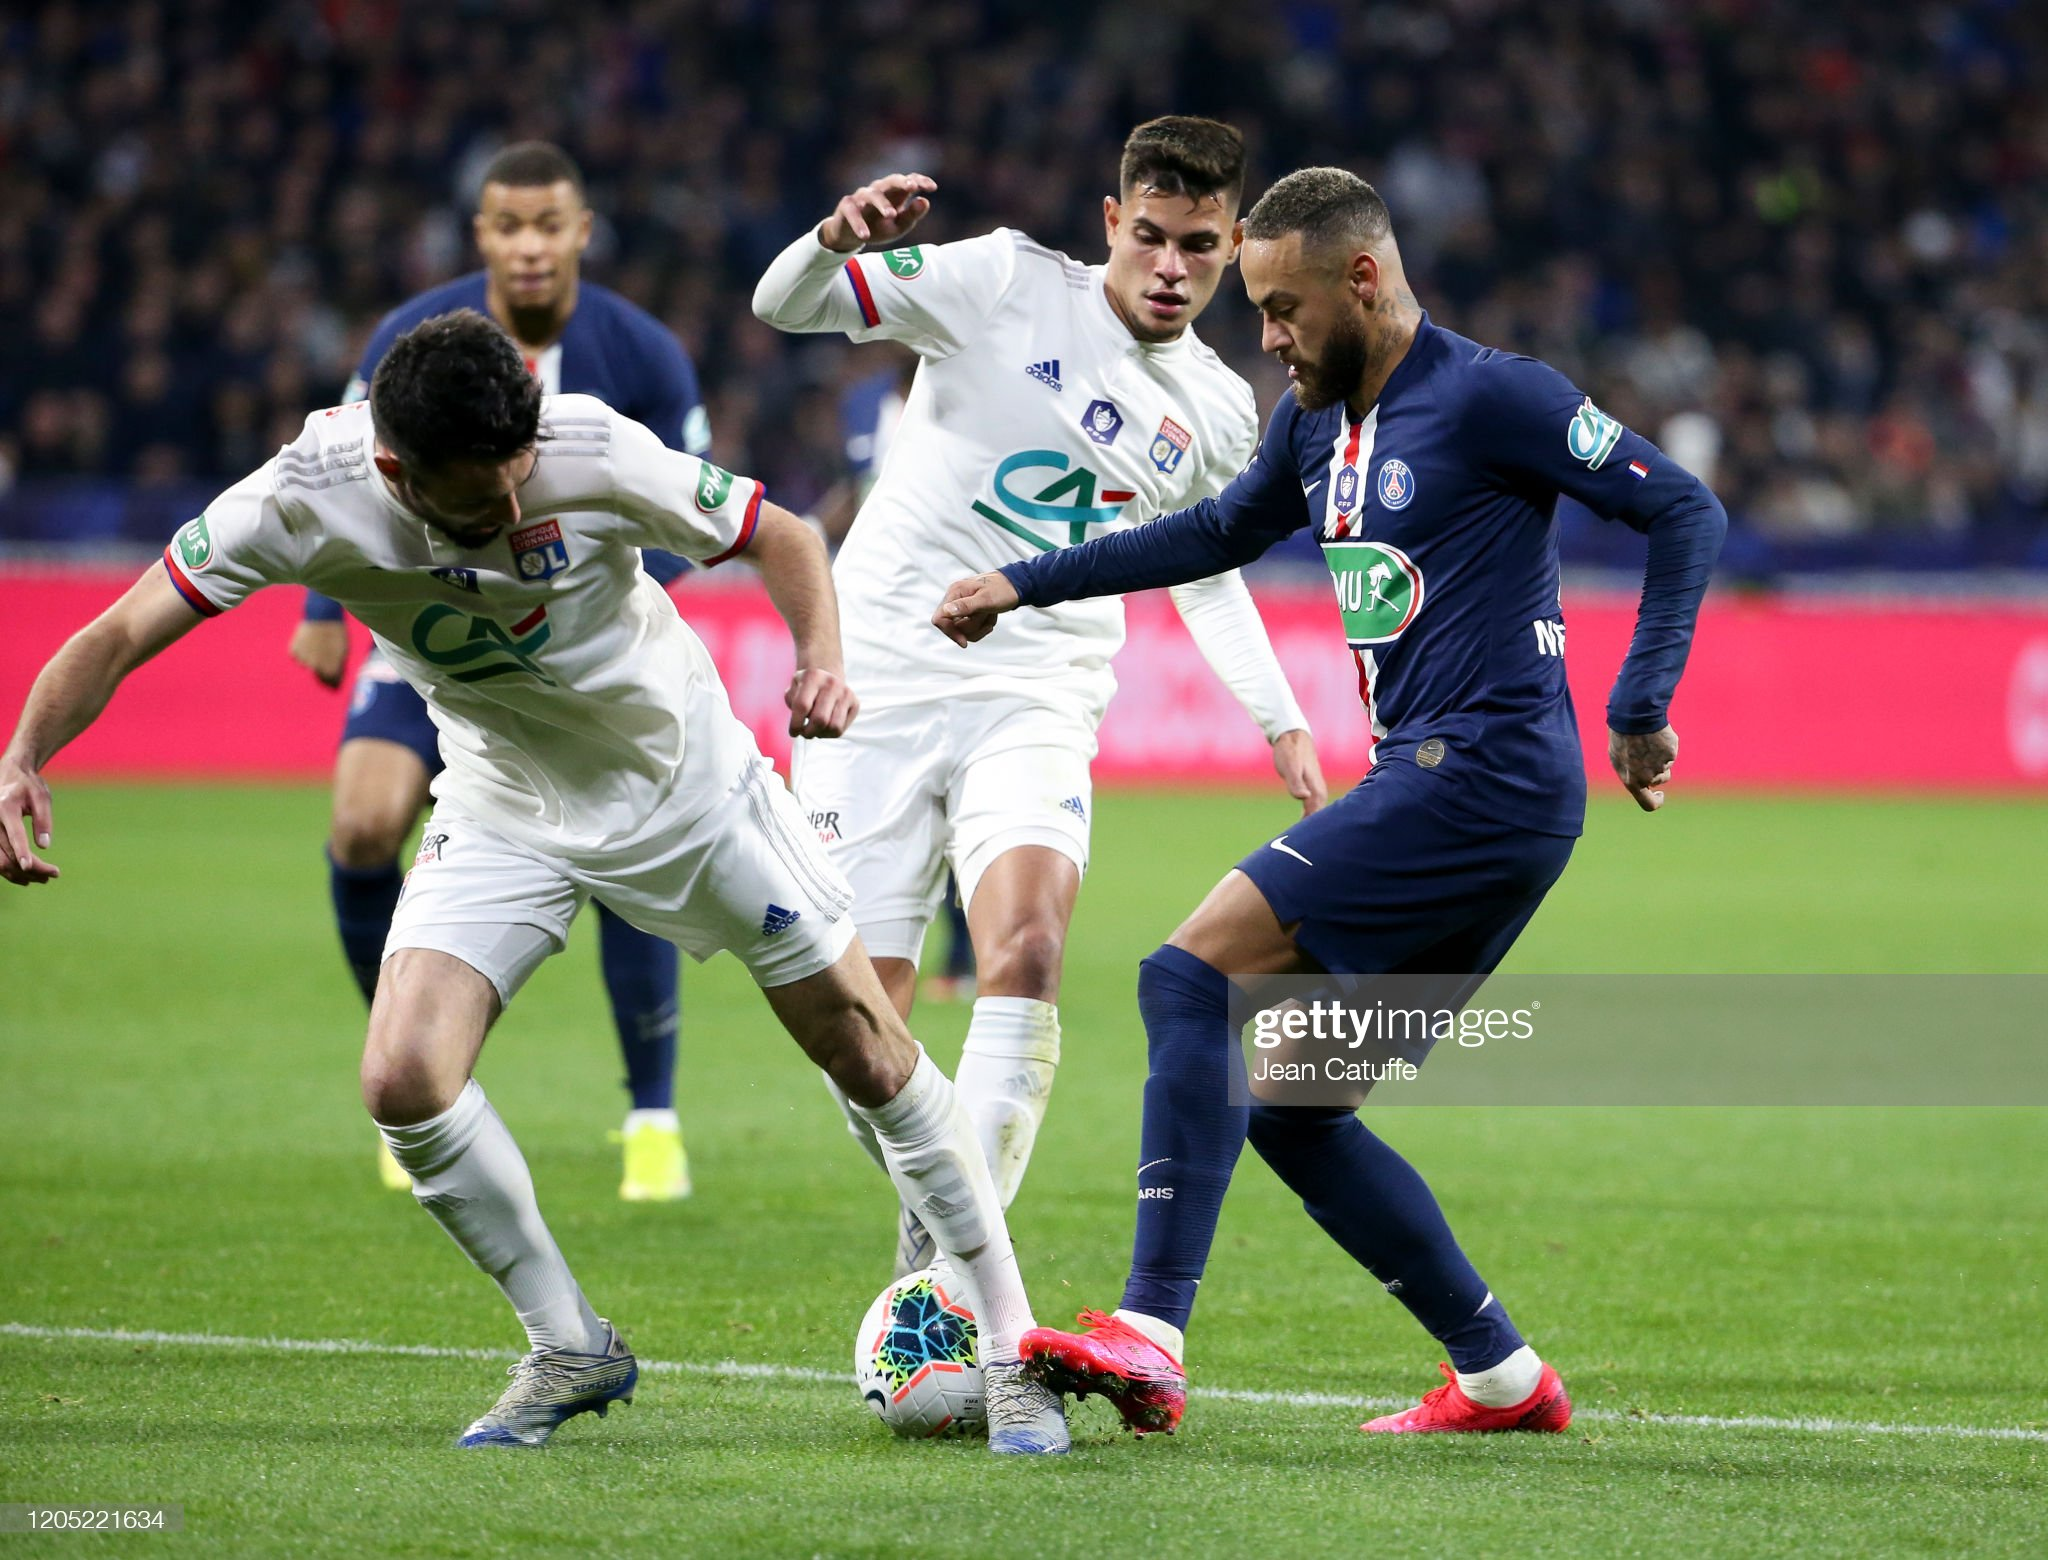 PSG vs Lyon Preview, prediction and odds